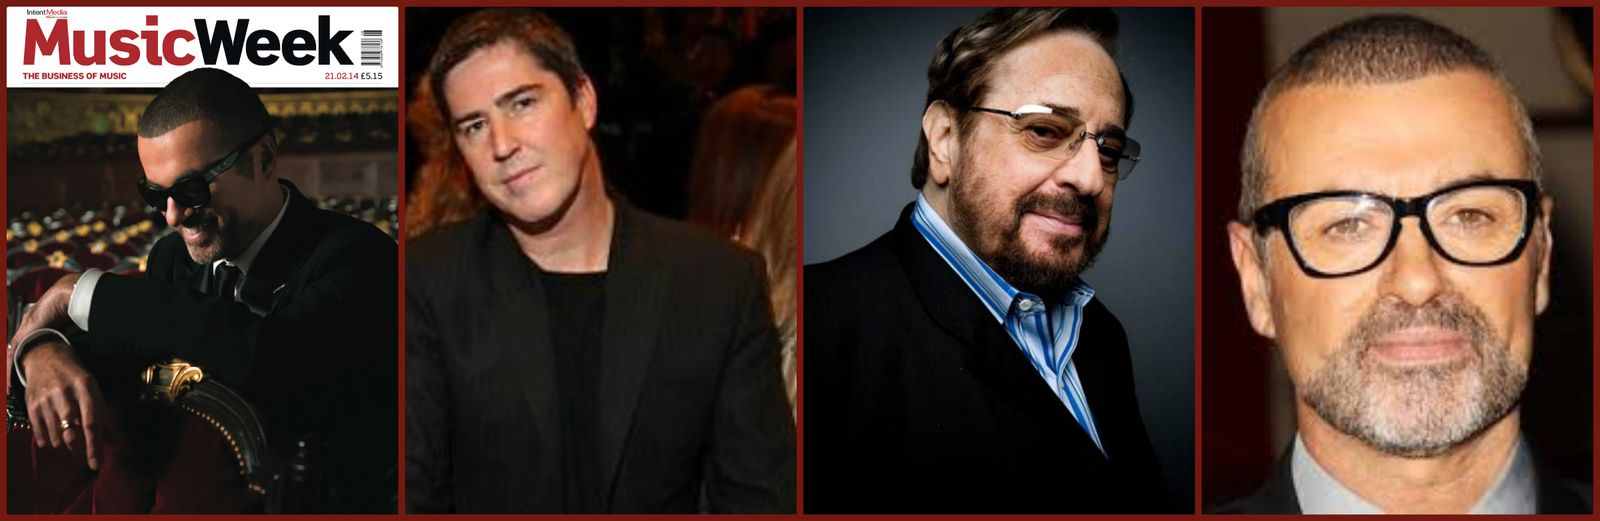 MUSIC WEEK - GEORGE MICHAEL &amp&#x3B; DAVID AUSTIN RENDENT HOMMAGE A PHIL RAMONE